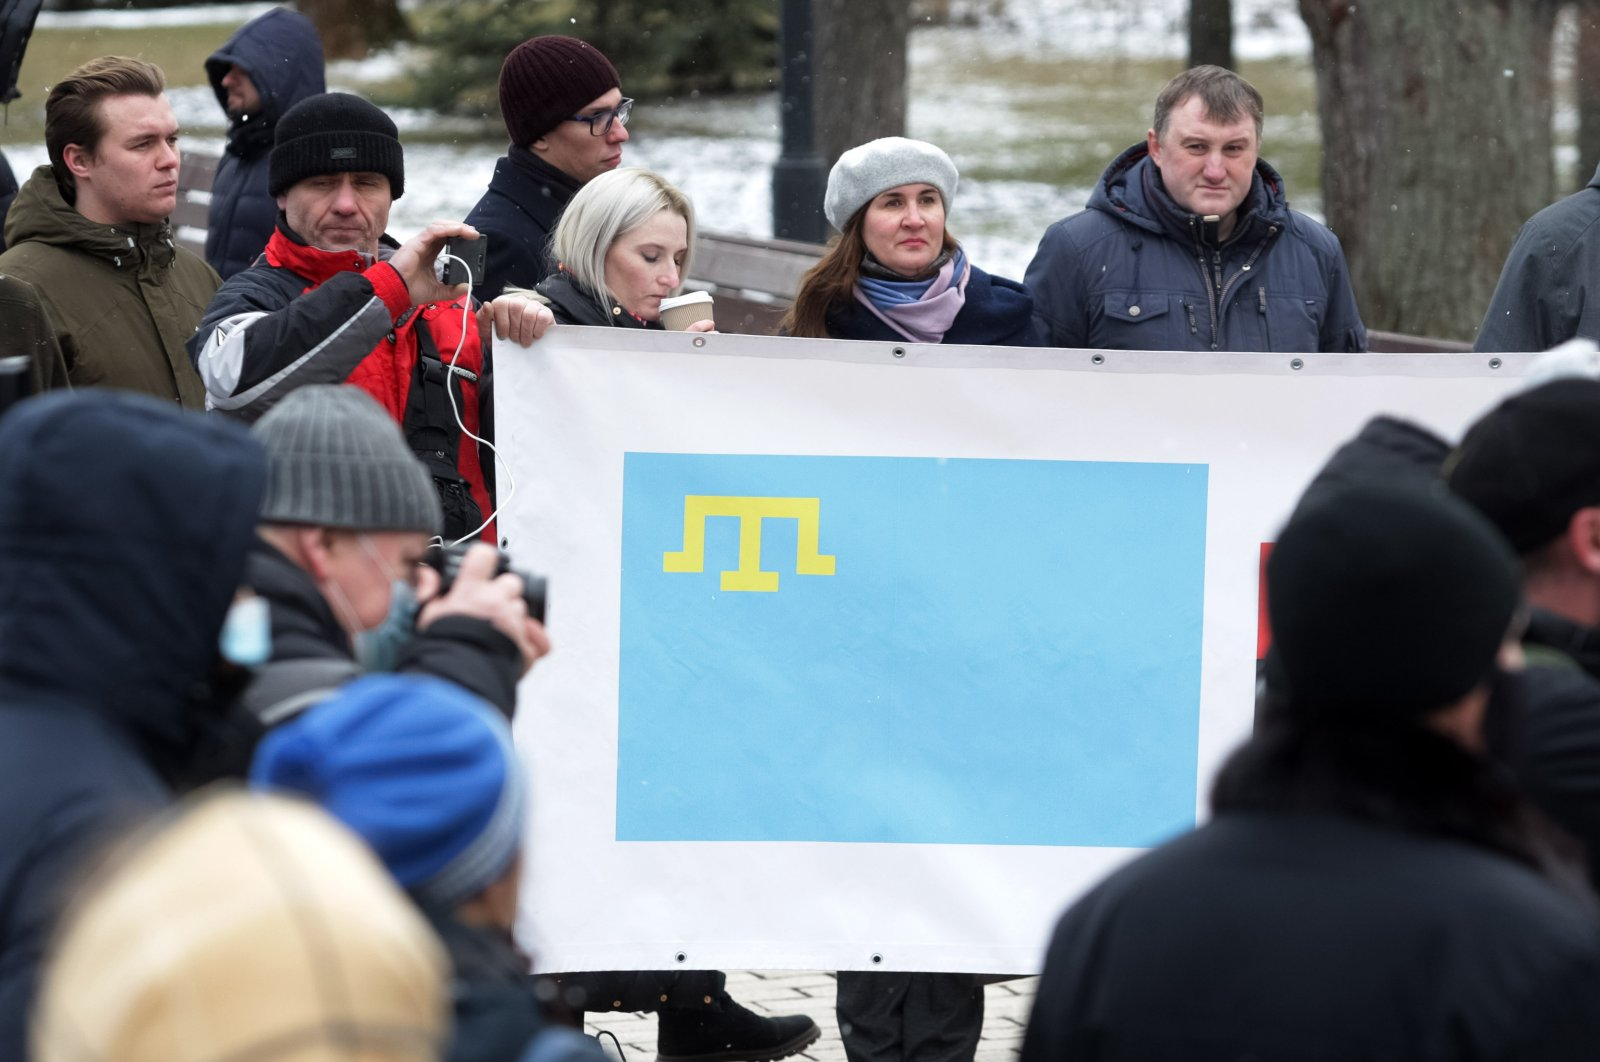 The Solidarity with Crimea event takes place in Kyiv, Ukraine, March 9, 2021. (AA)